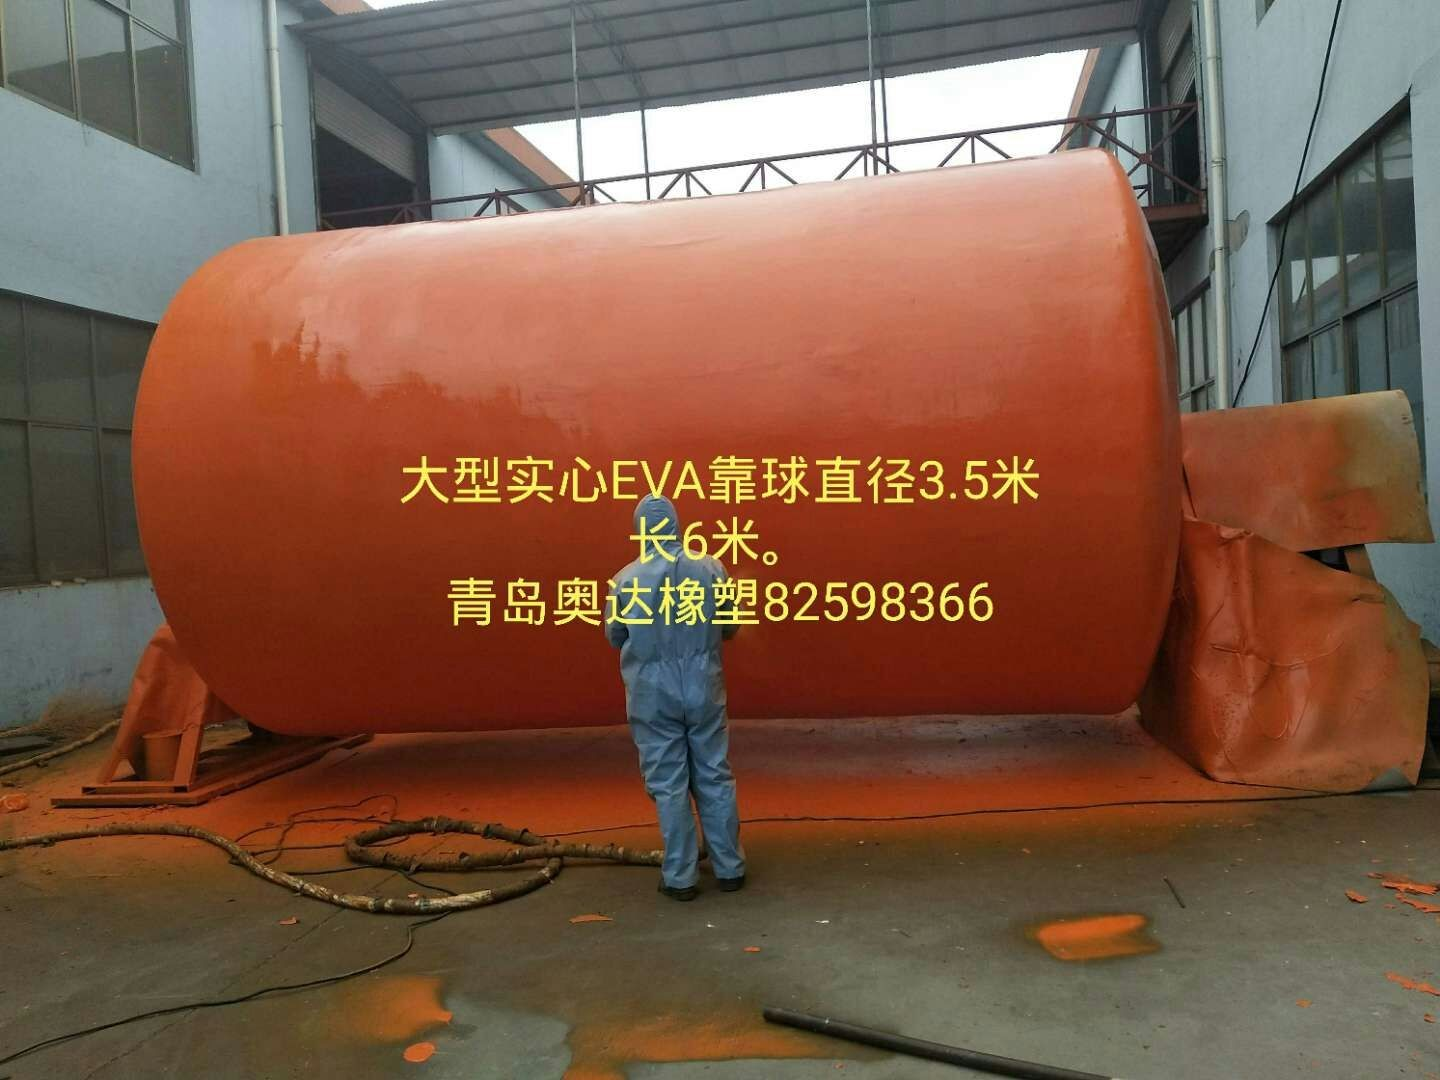 High quality Large solid EVA ball Quotes,China Large solid EVA ball Factory,Large solid EVA ball Purchasing